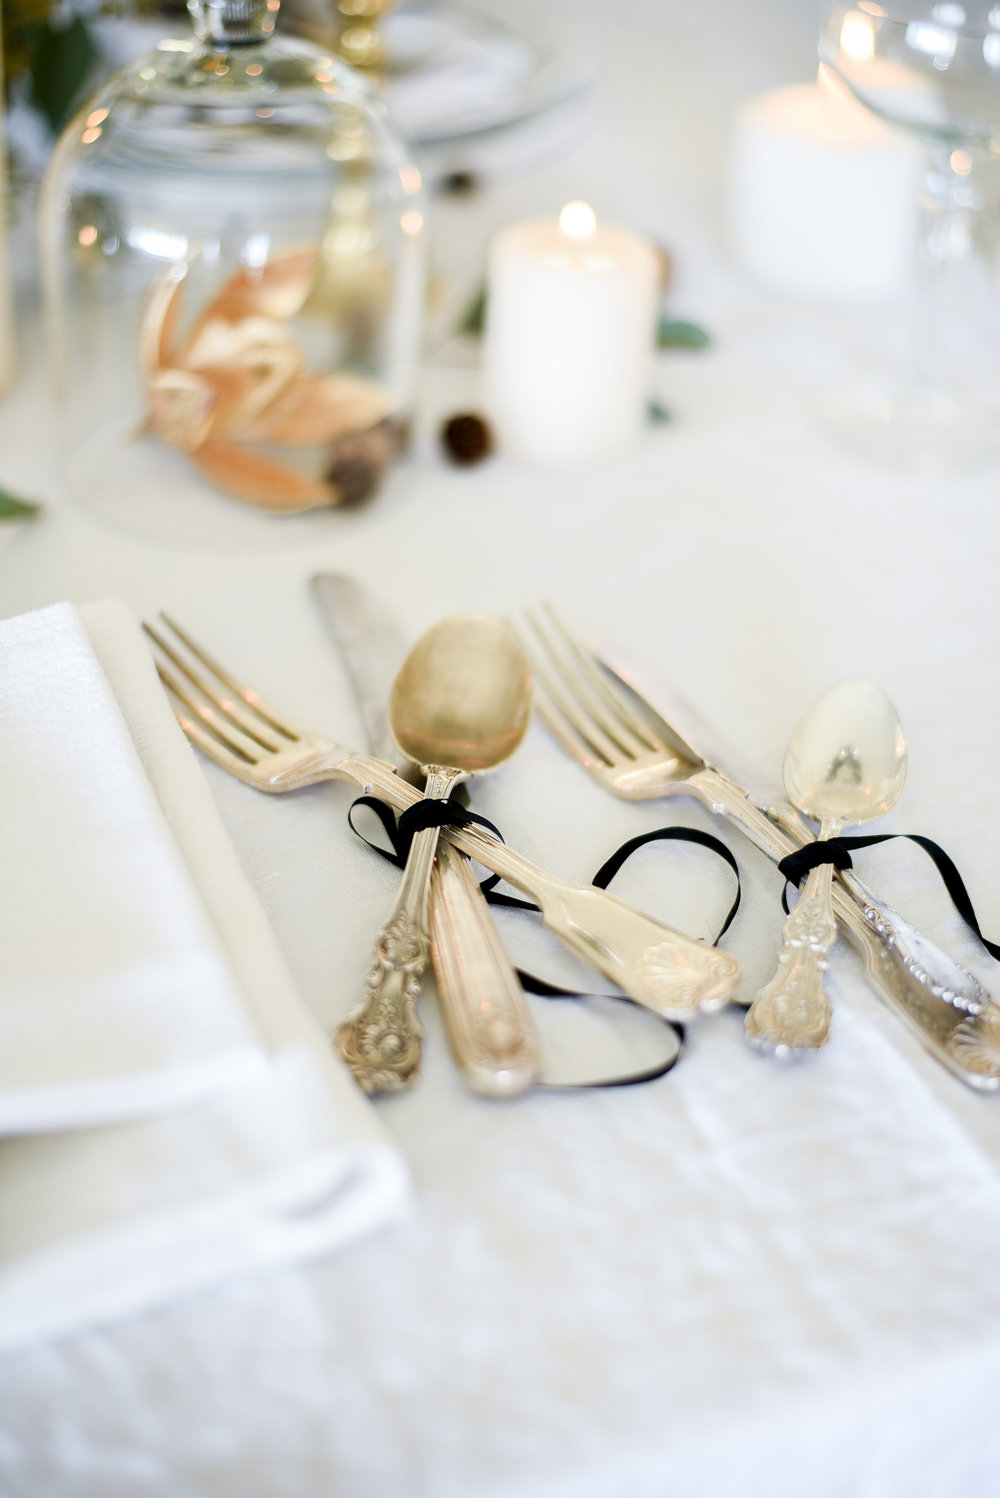 Vintage silver utensils on holiday tablescape - boxwoodavenue.com